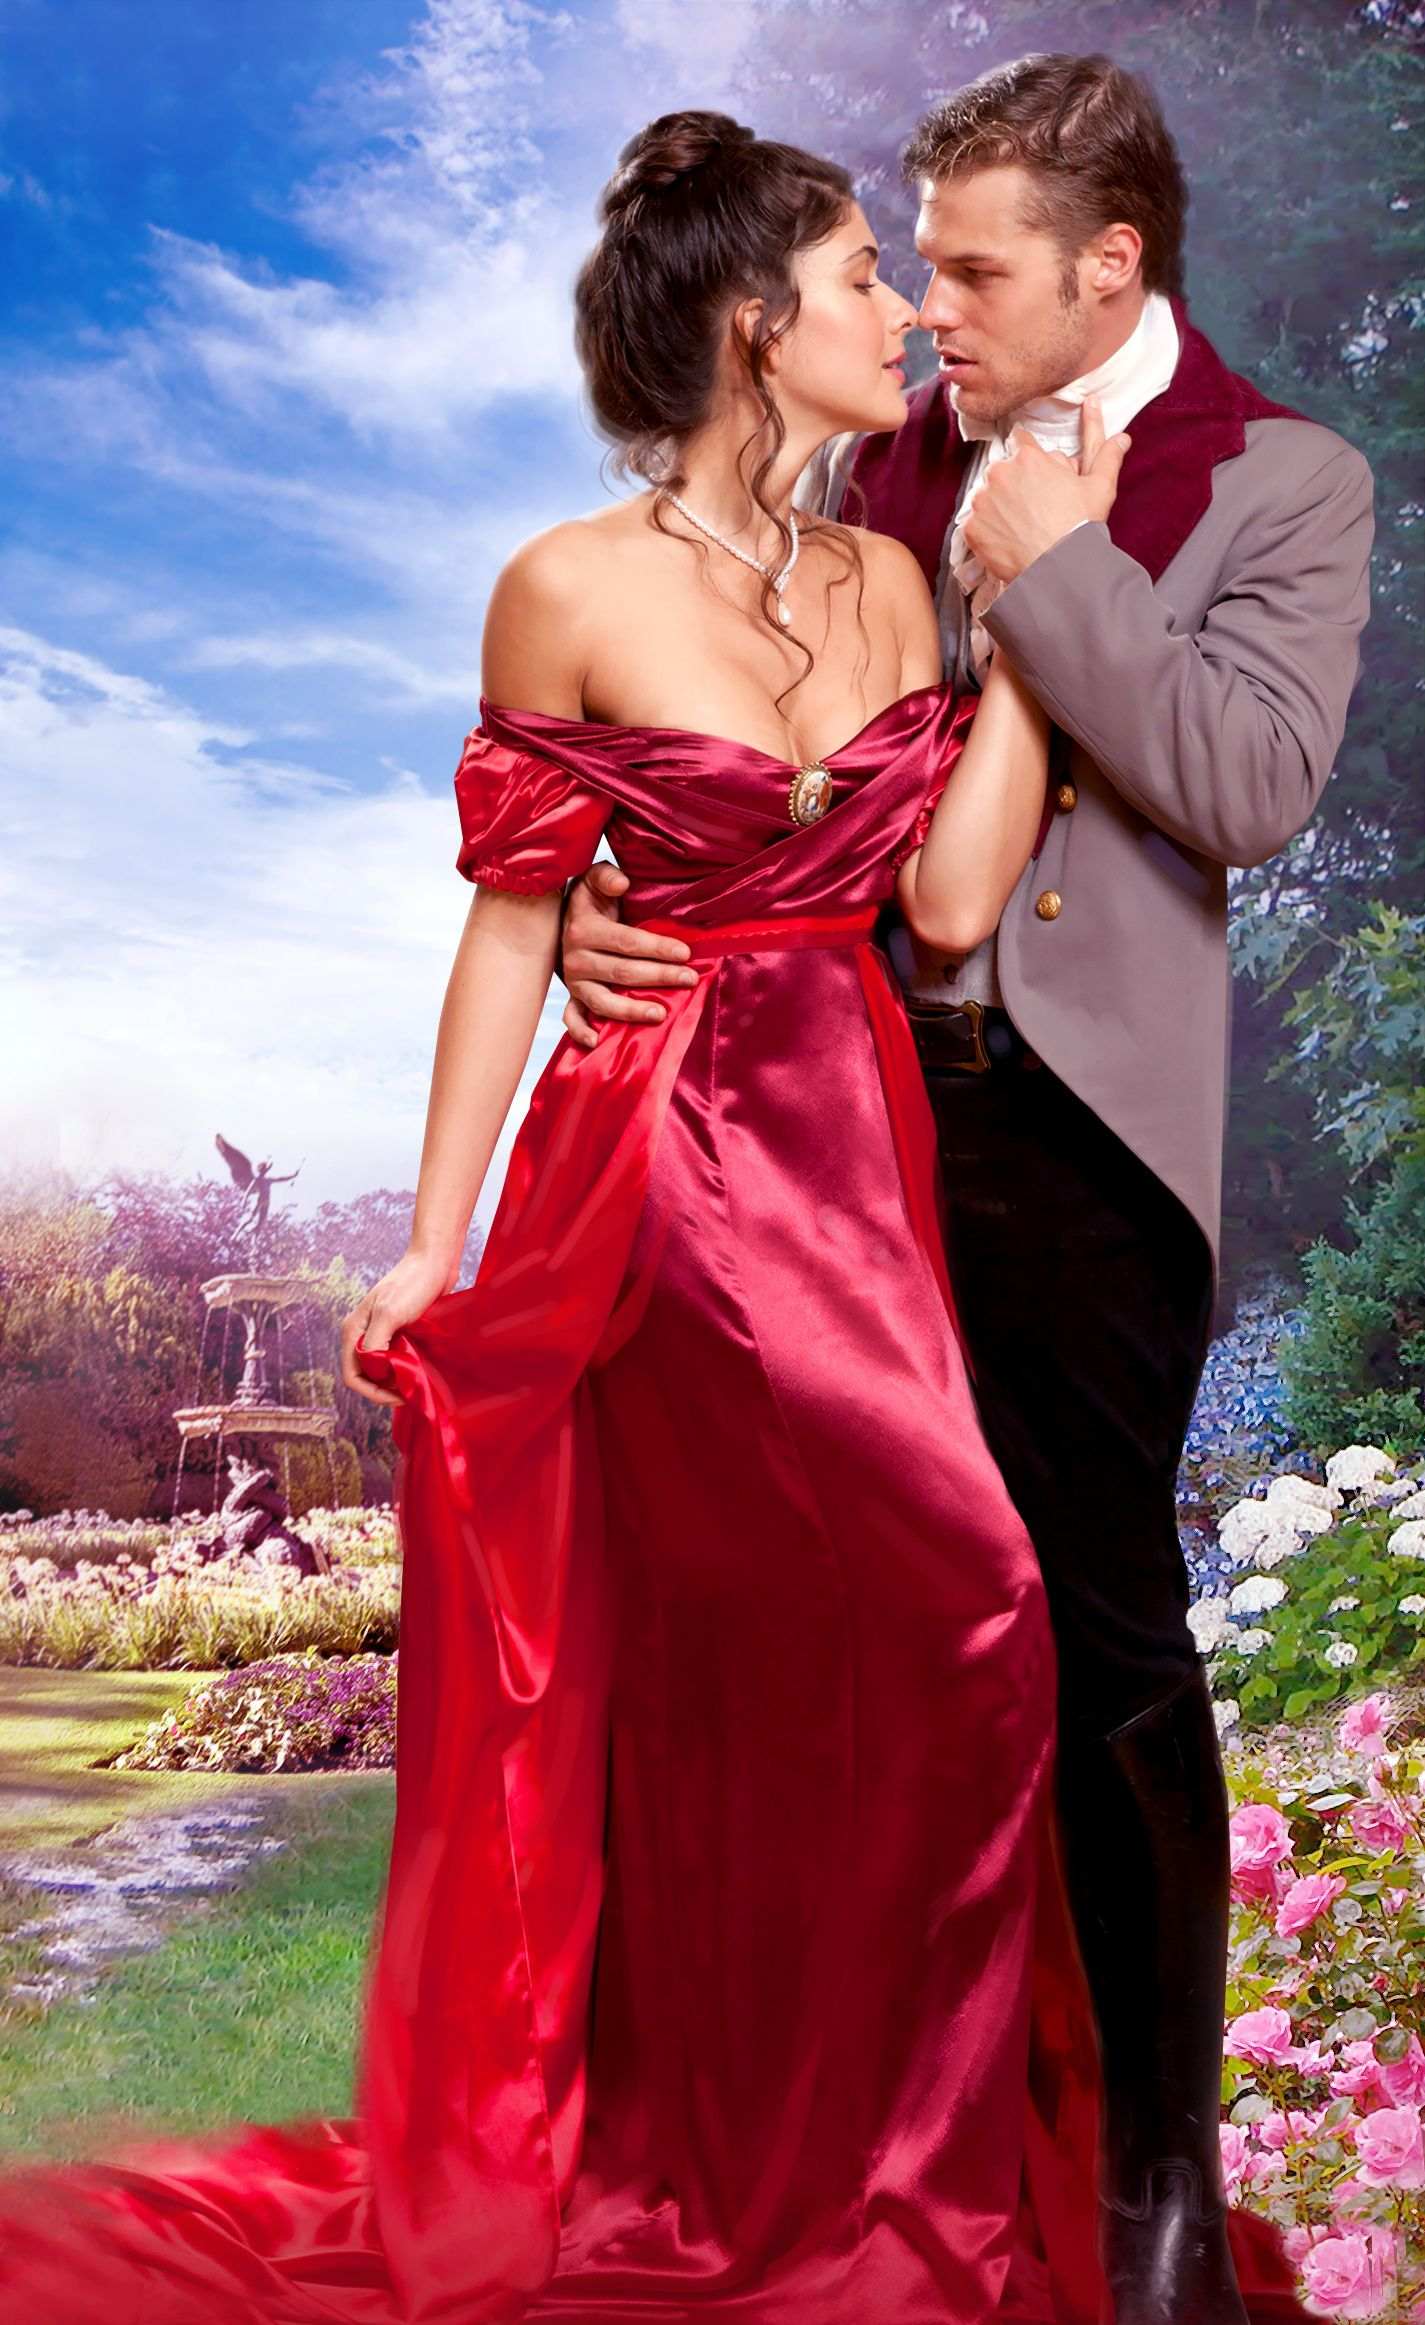 Romantic Book Cover Art ~ Pin by belinda slager on romance book covers art